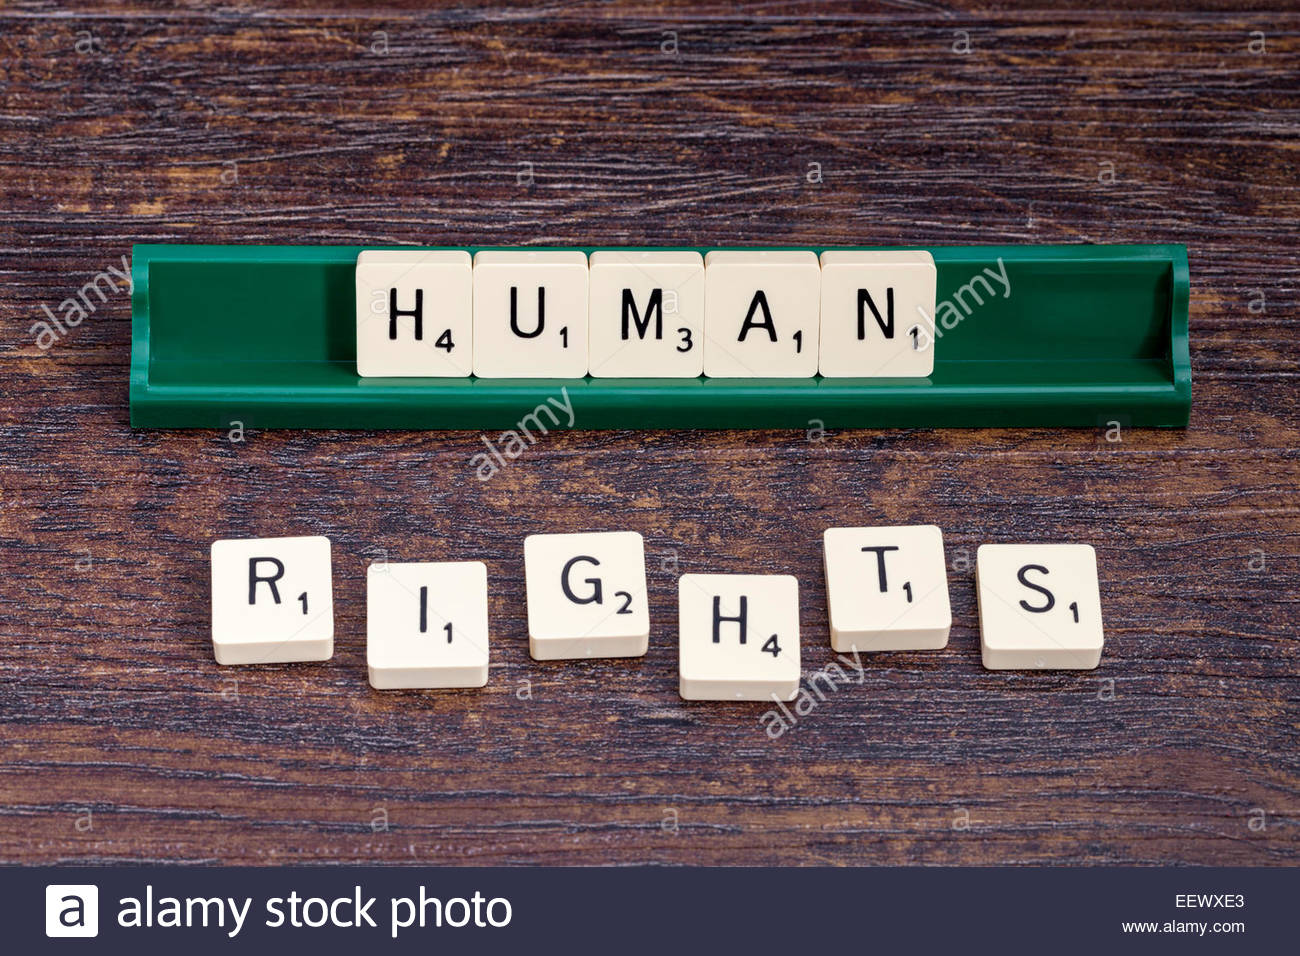 Human Rights spelled out with scrabble letters. - Stock Image